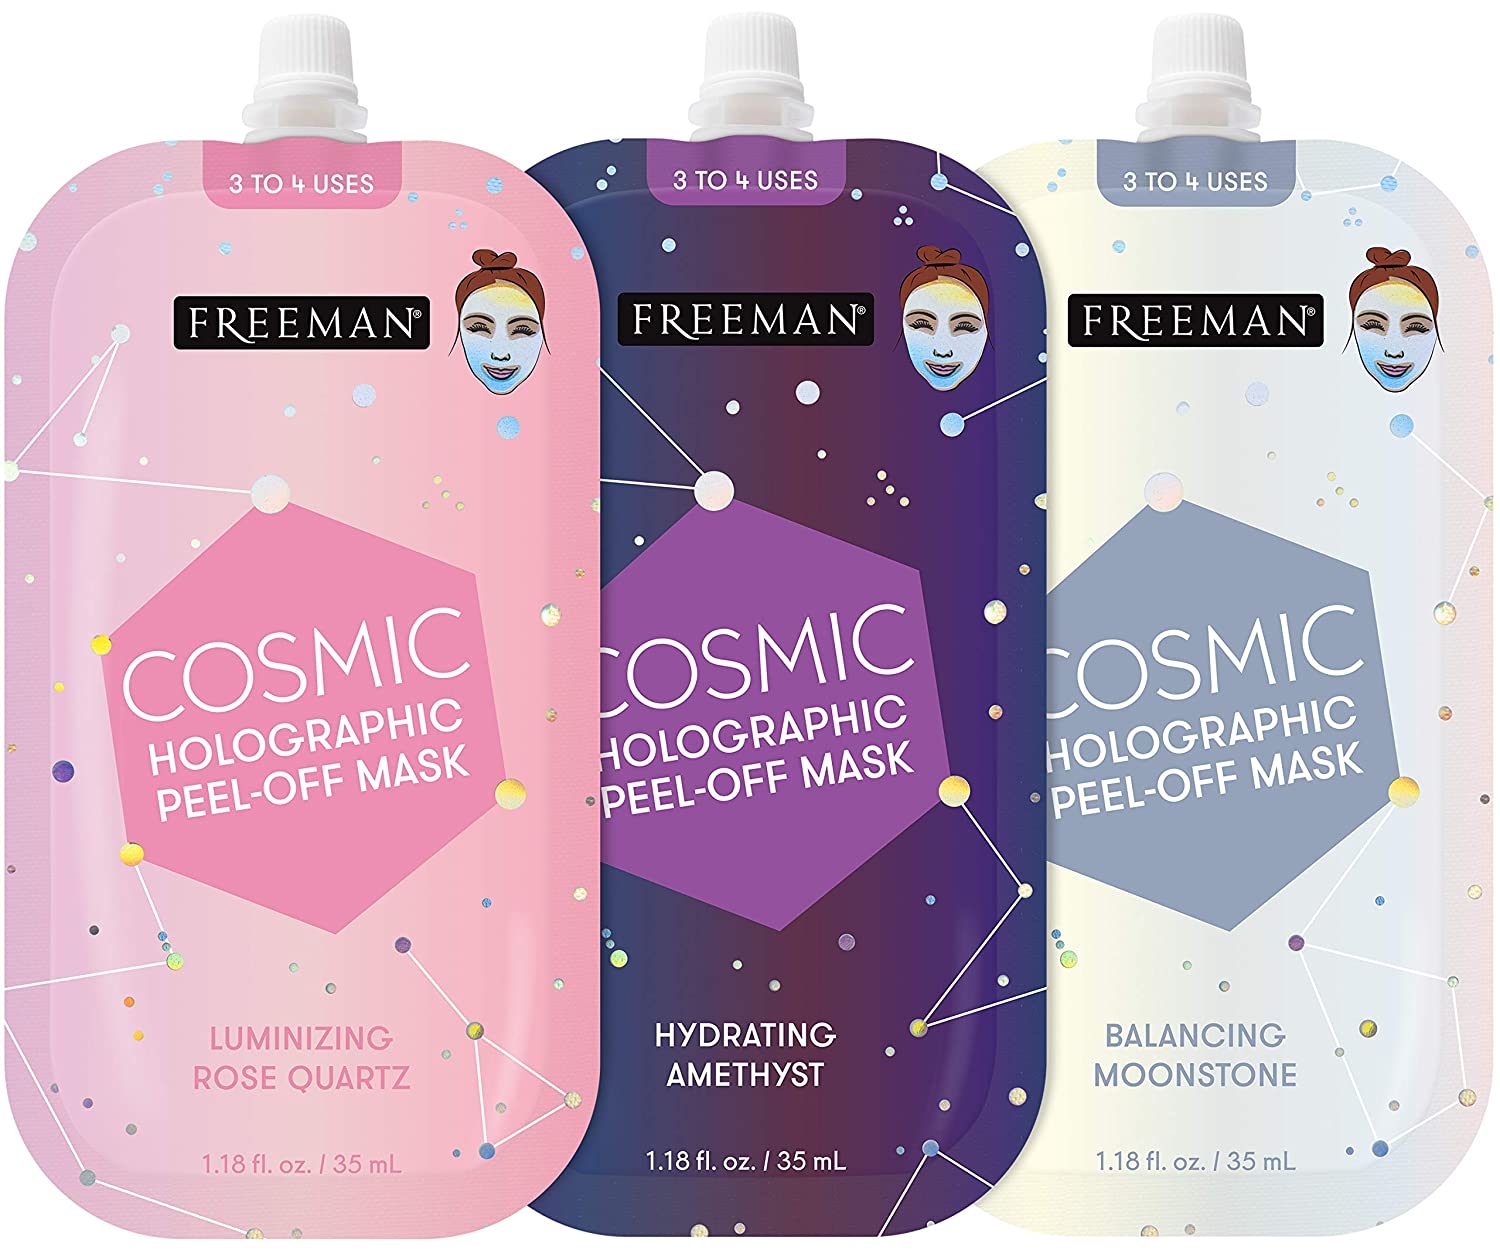 Freeman Cosmic Masks - 3 pack Spout Opening to Re-Seal (3-4 uses)